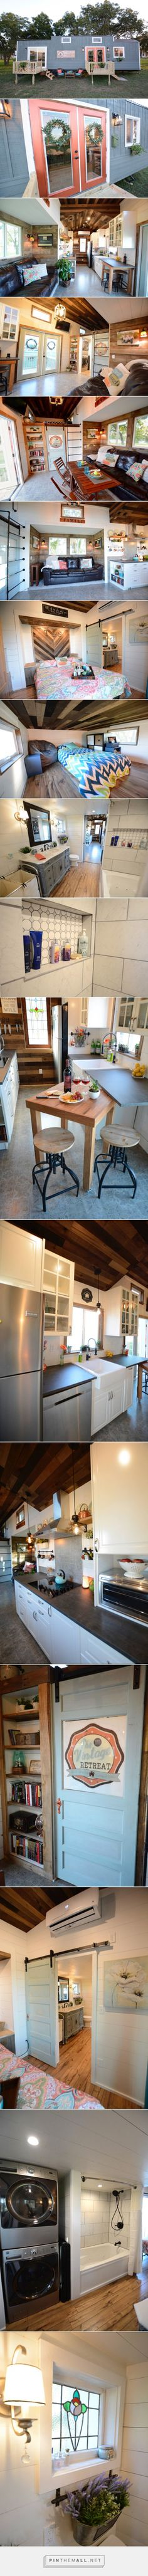 Vintage Retreat by Hill Country Tiny Houses - Tiny Living - created via https://pinthemall.net